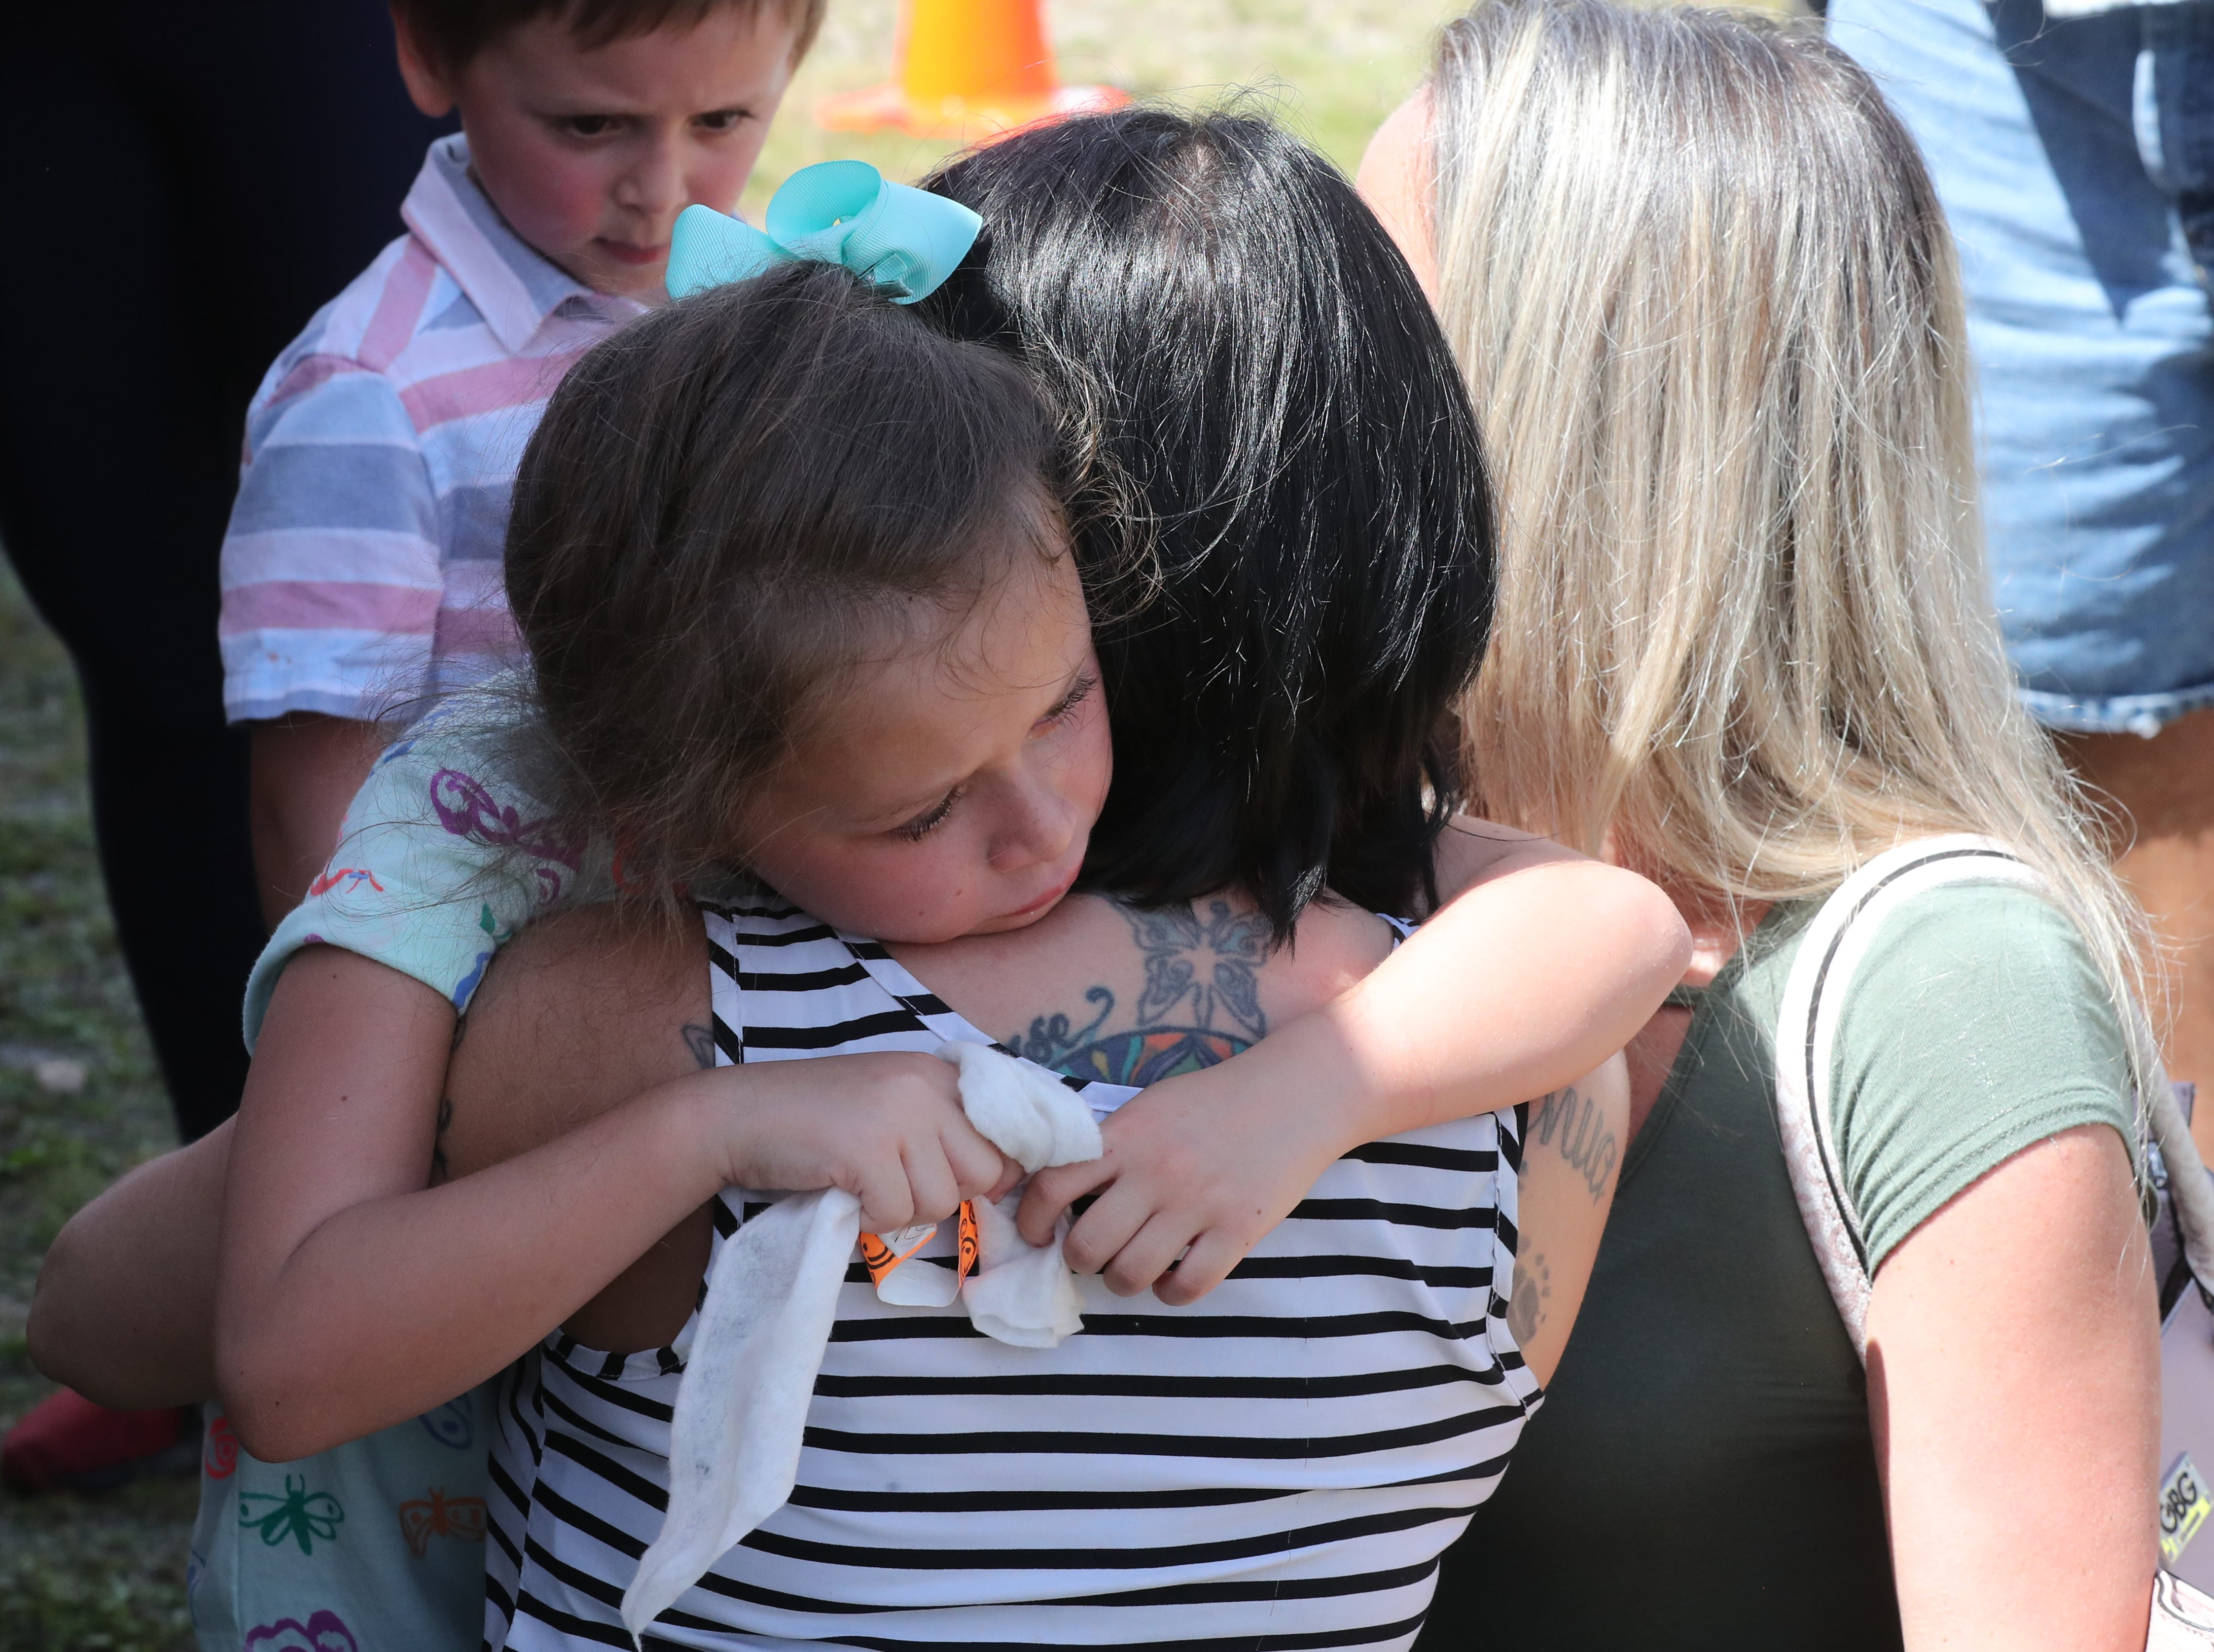 Cheyanne Begle, 7 of Cape Coral and classmate of Layla, hugs Kathleen Aiken, Layla's mom at the event Saturday. Lights for Layla fundraiser. Lee County students who wait for school buses in the dark morning hours will be able to adorn their backpacks with flashing LED lights starting next year. Local agencies are partnering to raise money for the new safety protocols after the death of 8-year-old Layla Aiken, who was hit by a pickup truck while waiting at her bus stop with her brothers. Layla's family and friends hosted their own fundraiser called Lights for Layla Saturday from 1-3 p.m. at the Cape Assembly church, Cape Coral.